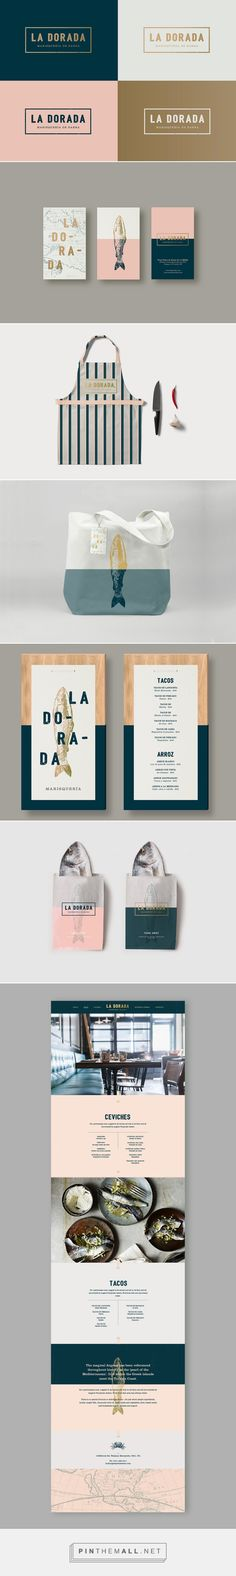 La Dorada packaging